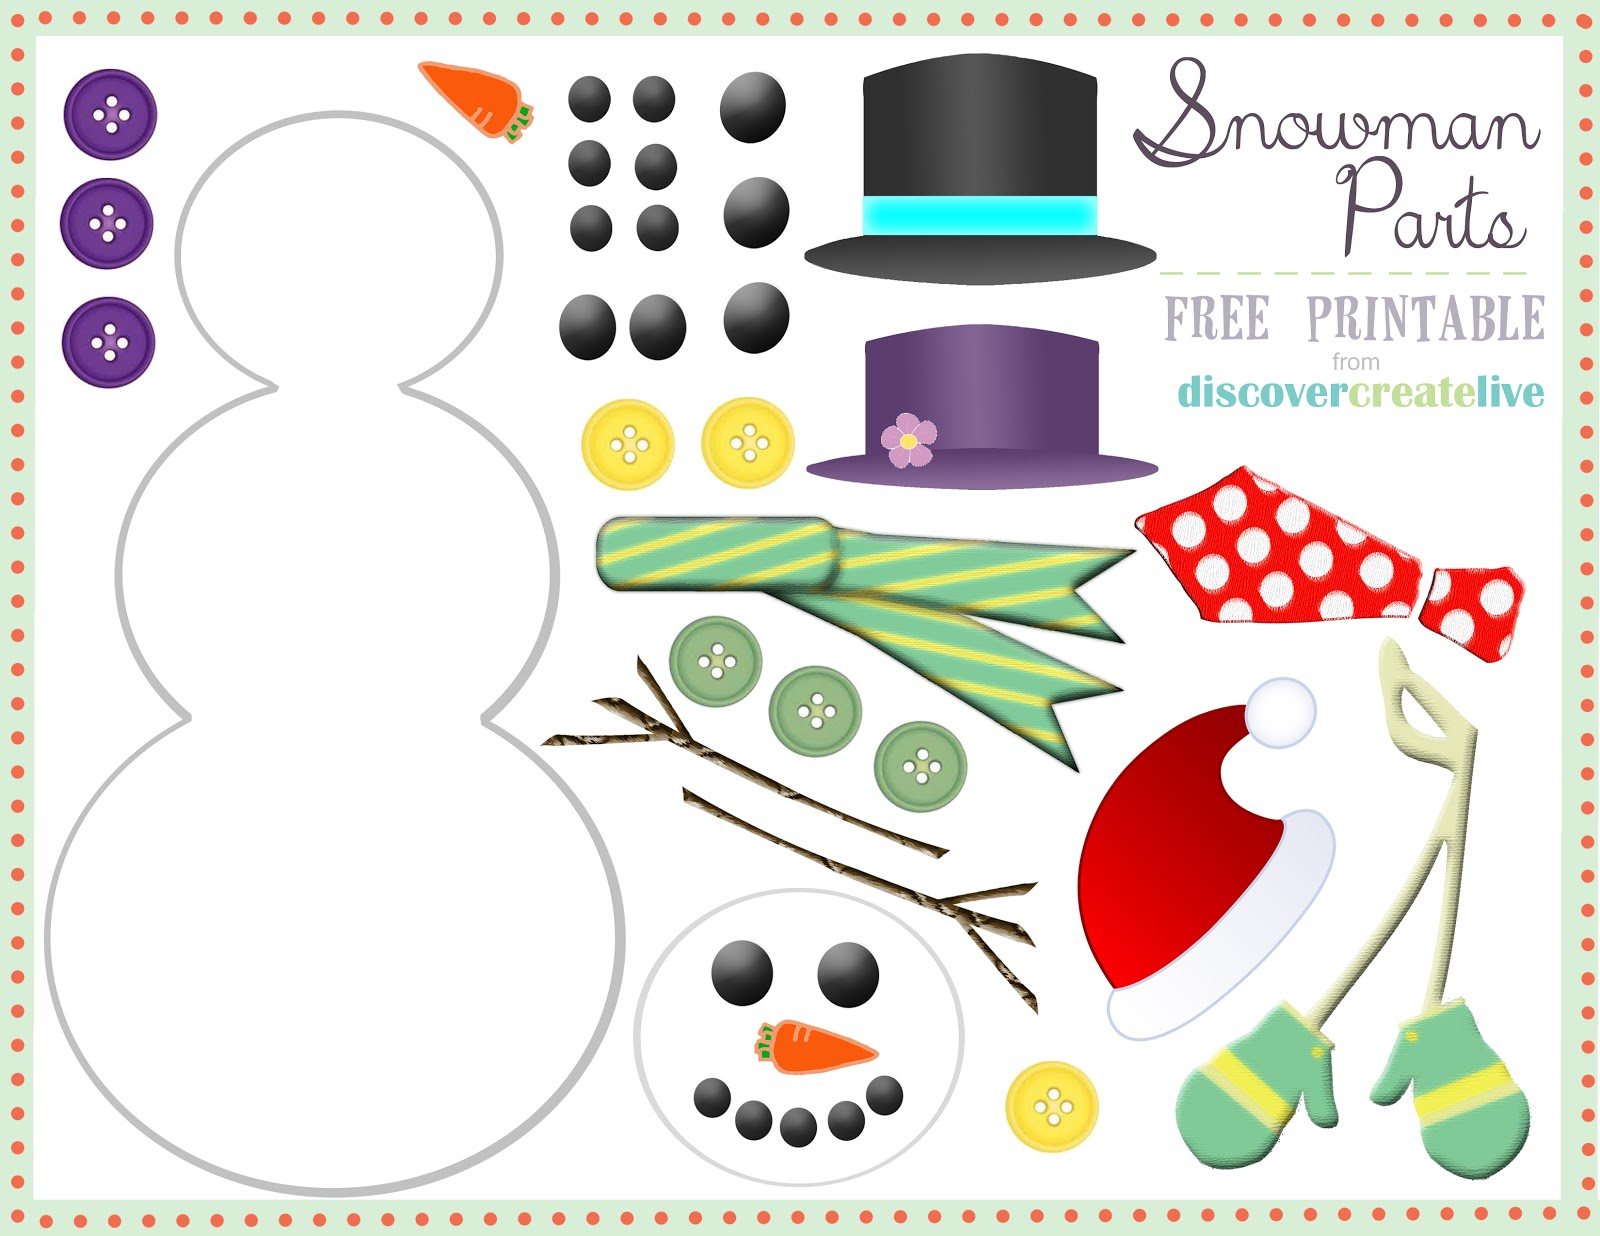 Graphic Monday Snowman Parts Assembly